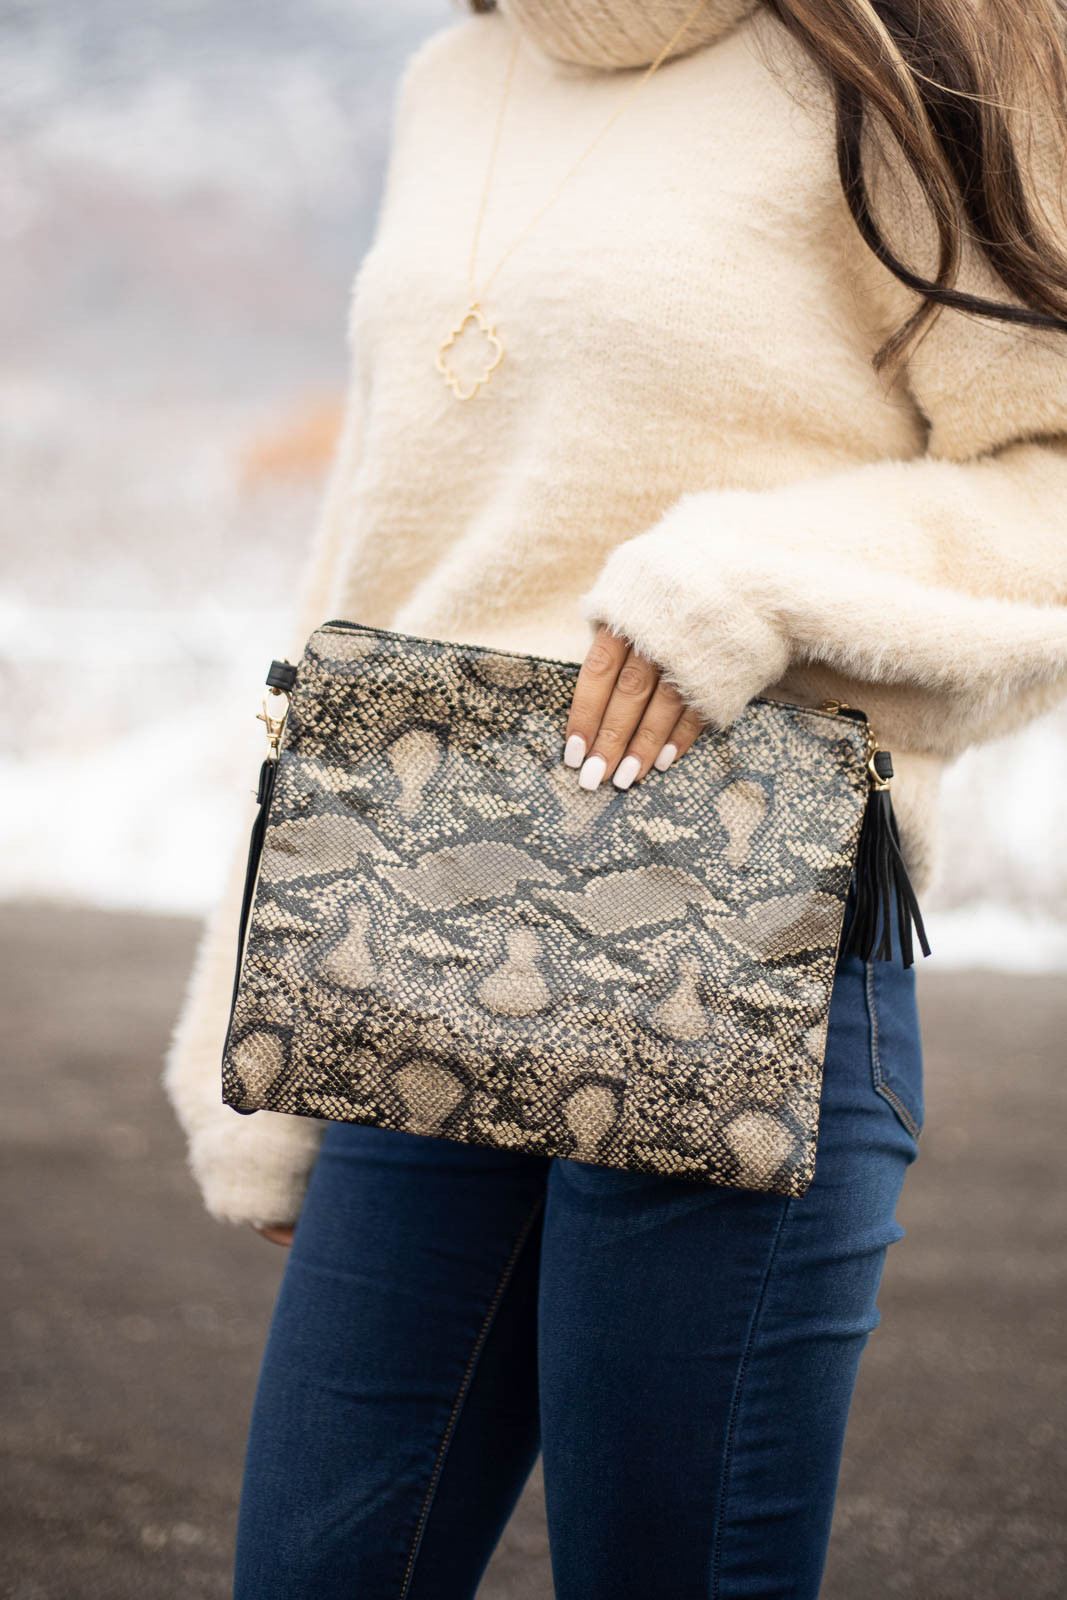 Cream and Black Snake Print Clutch with Detachable Strap